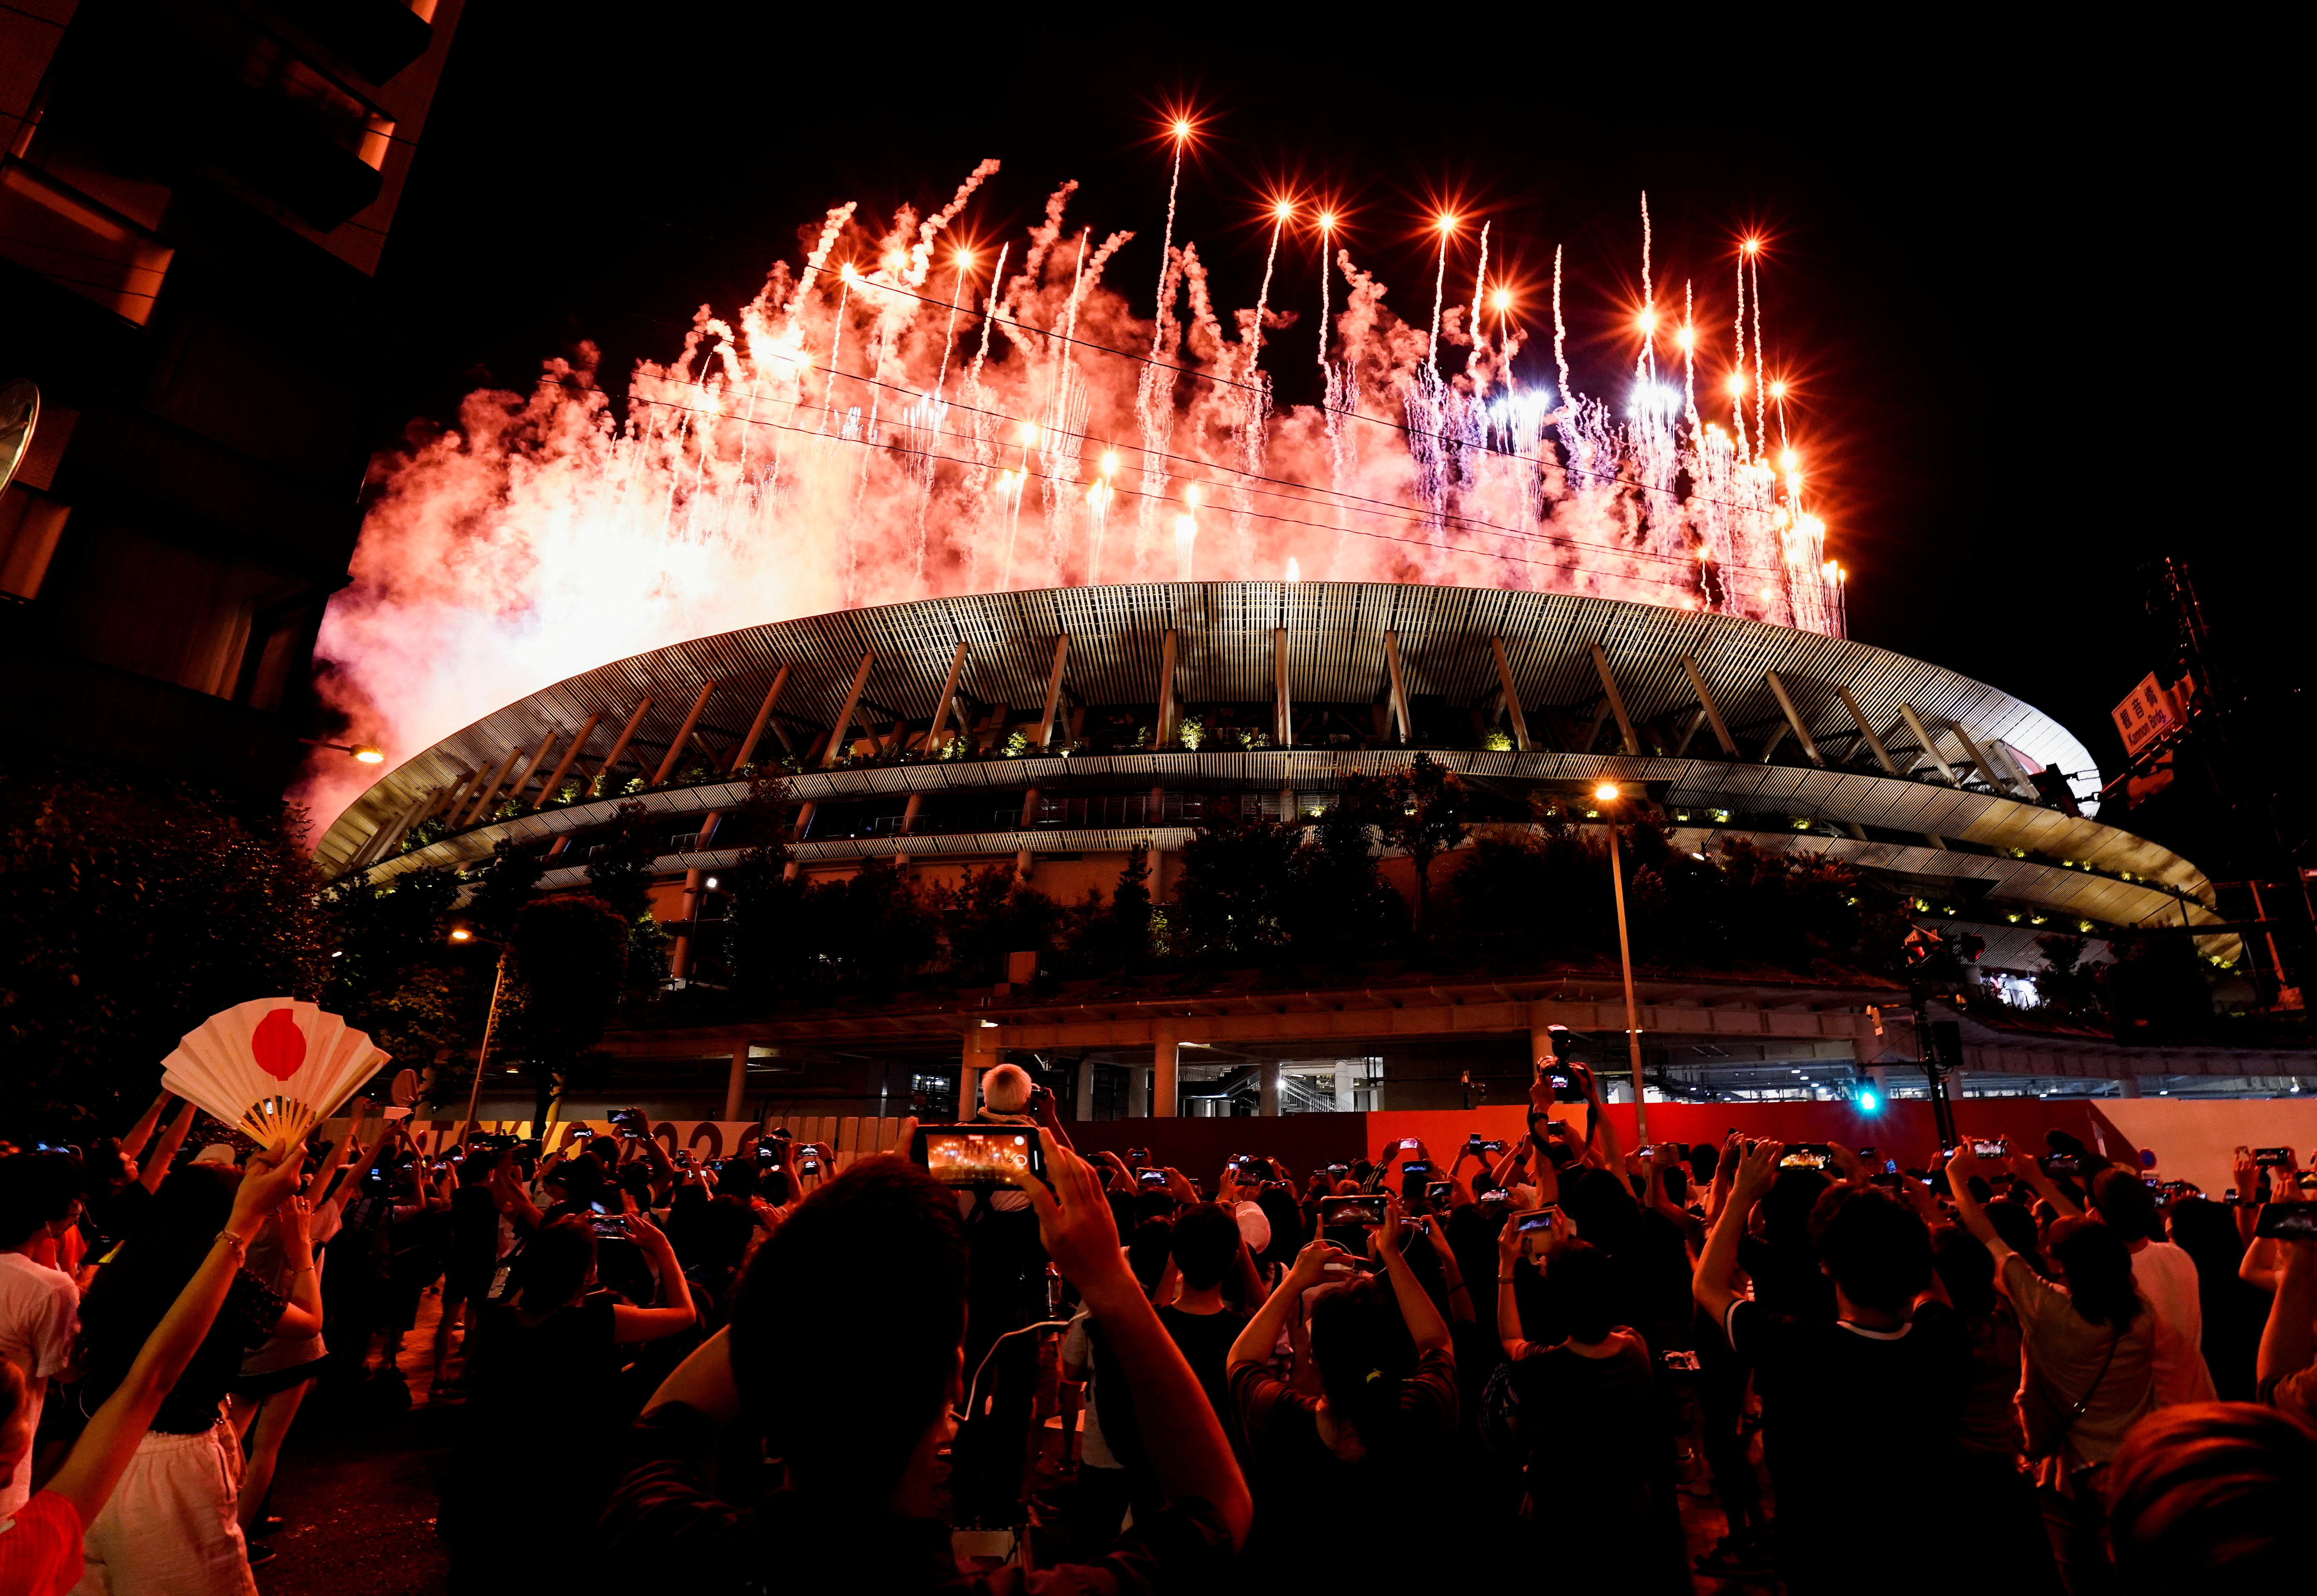 Tokyo 2020 Olympics - The Tokyo 2020 Olympics Opening Ceremony - Olympic Stadium, Tokyo, Japan - July 23, 2021. Fireworks are seen from outside the stadium during the Opening Ceremony. REUTERS/Naoki Ogura